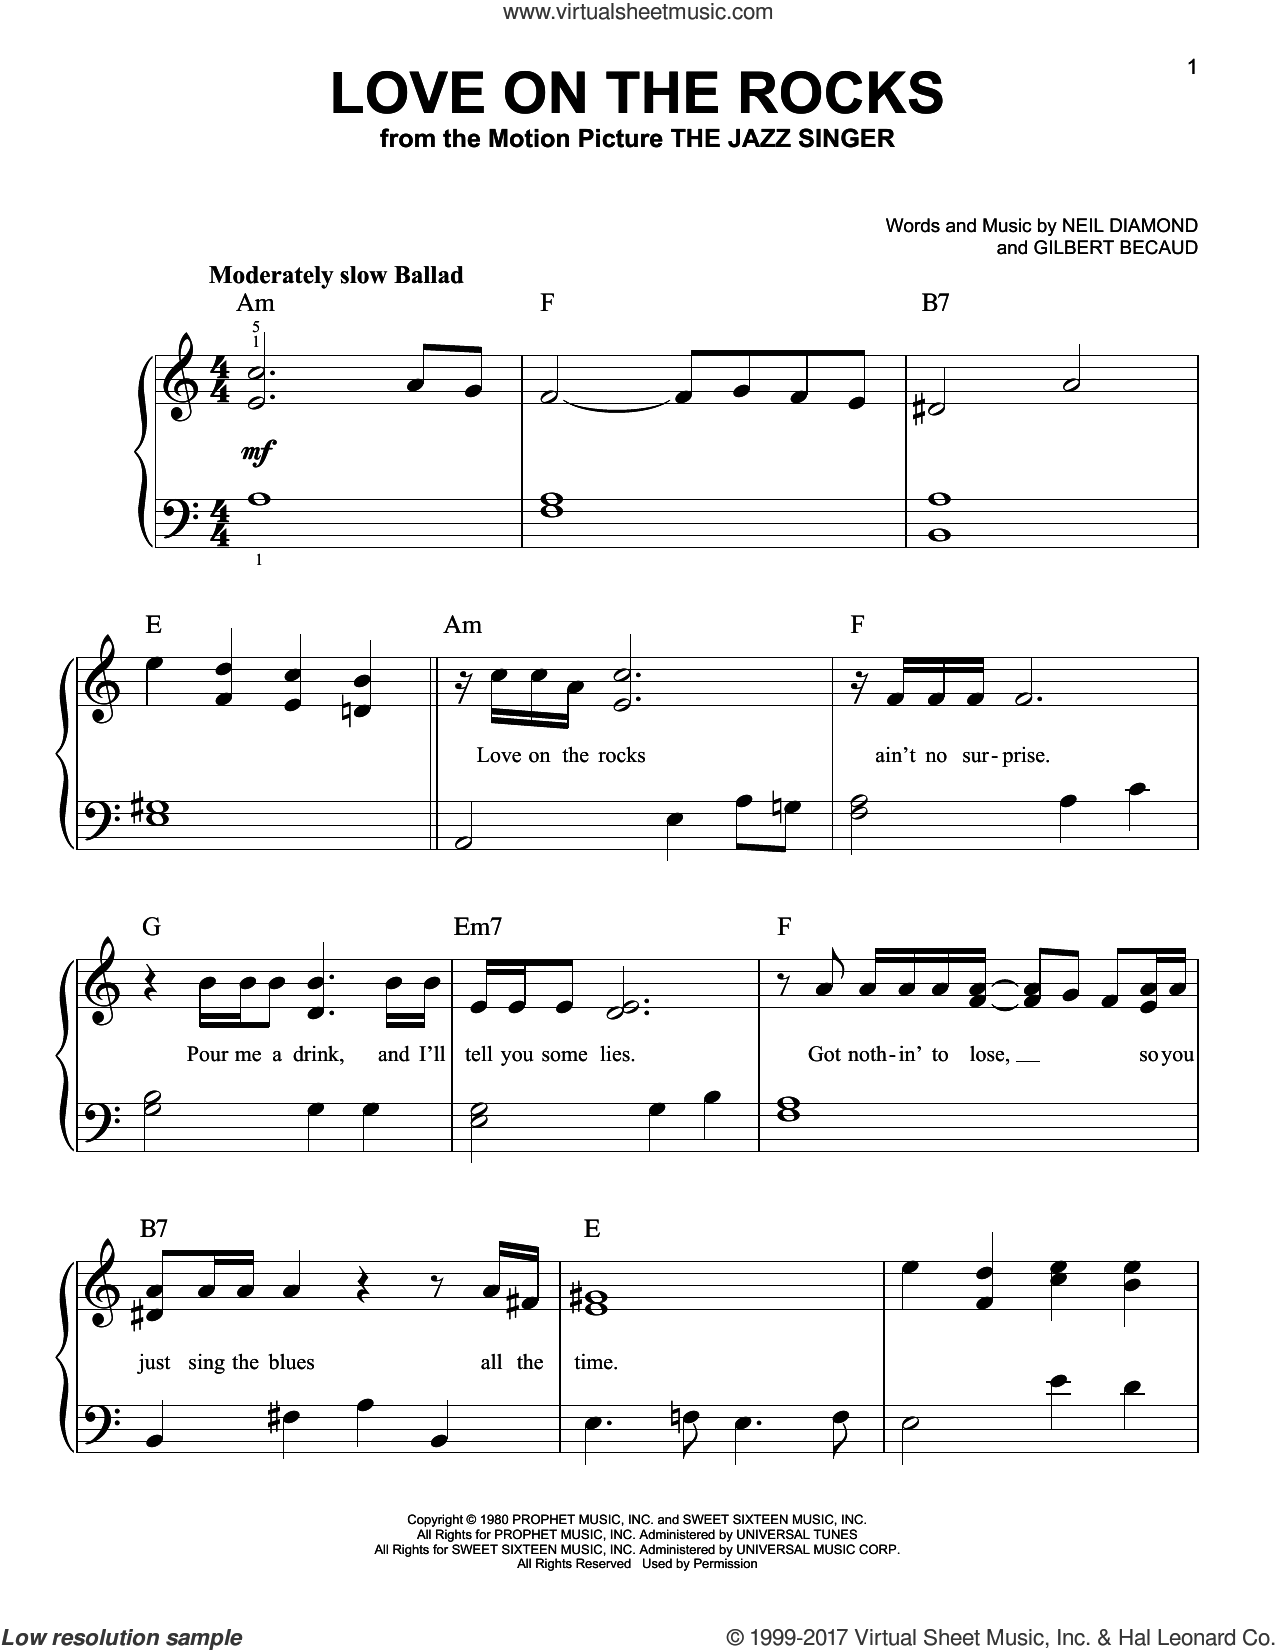 Love On The Rocks sheet music for piano solo by Neil Diamond and Gilbert Becaud, easy skill level